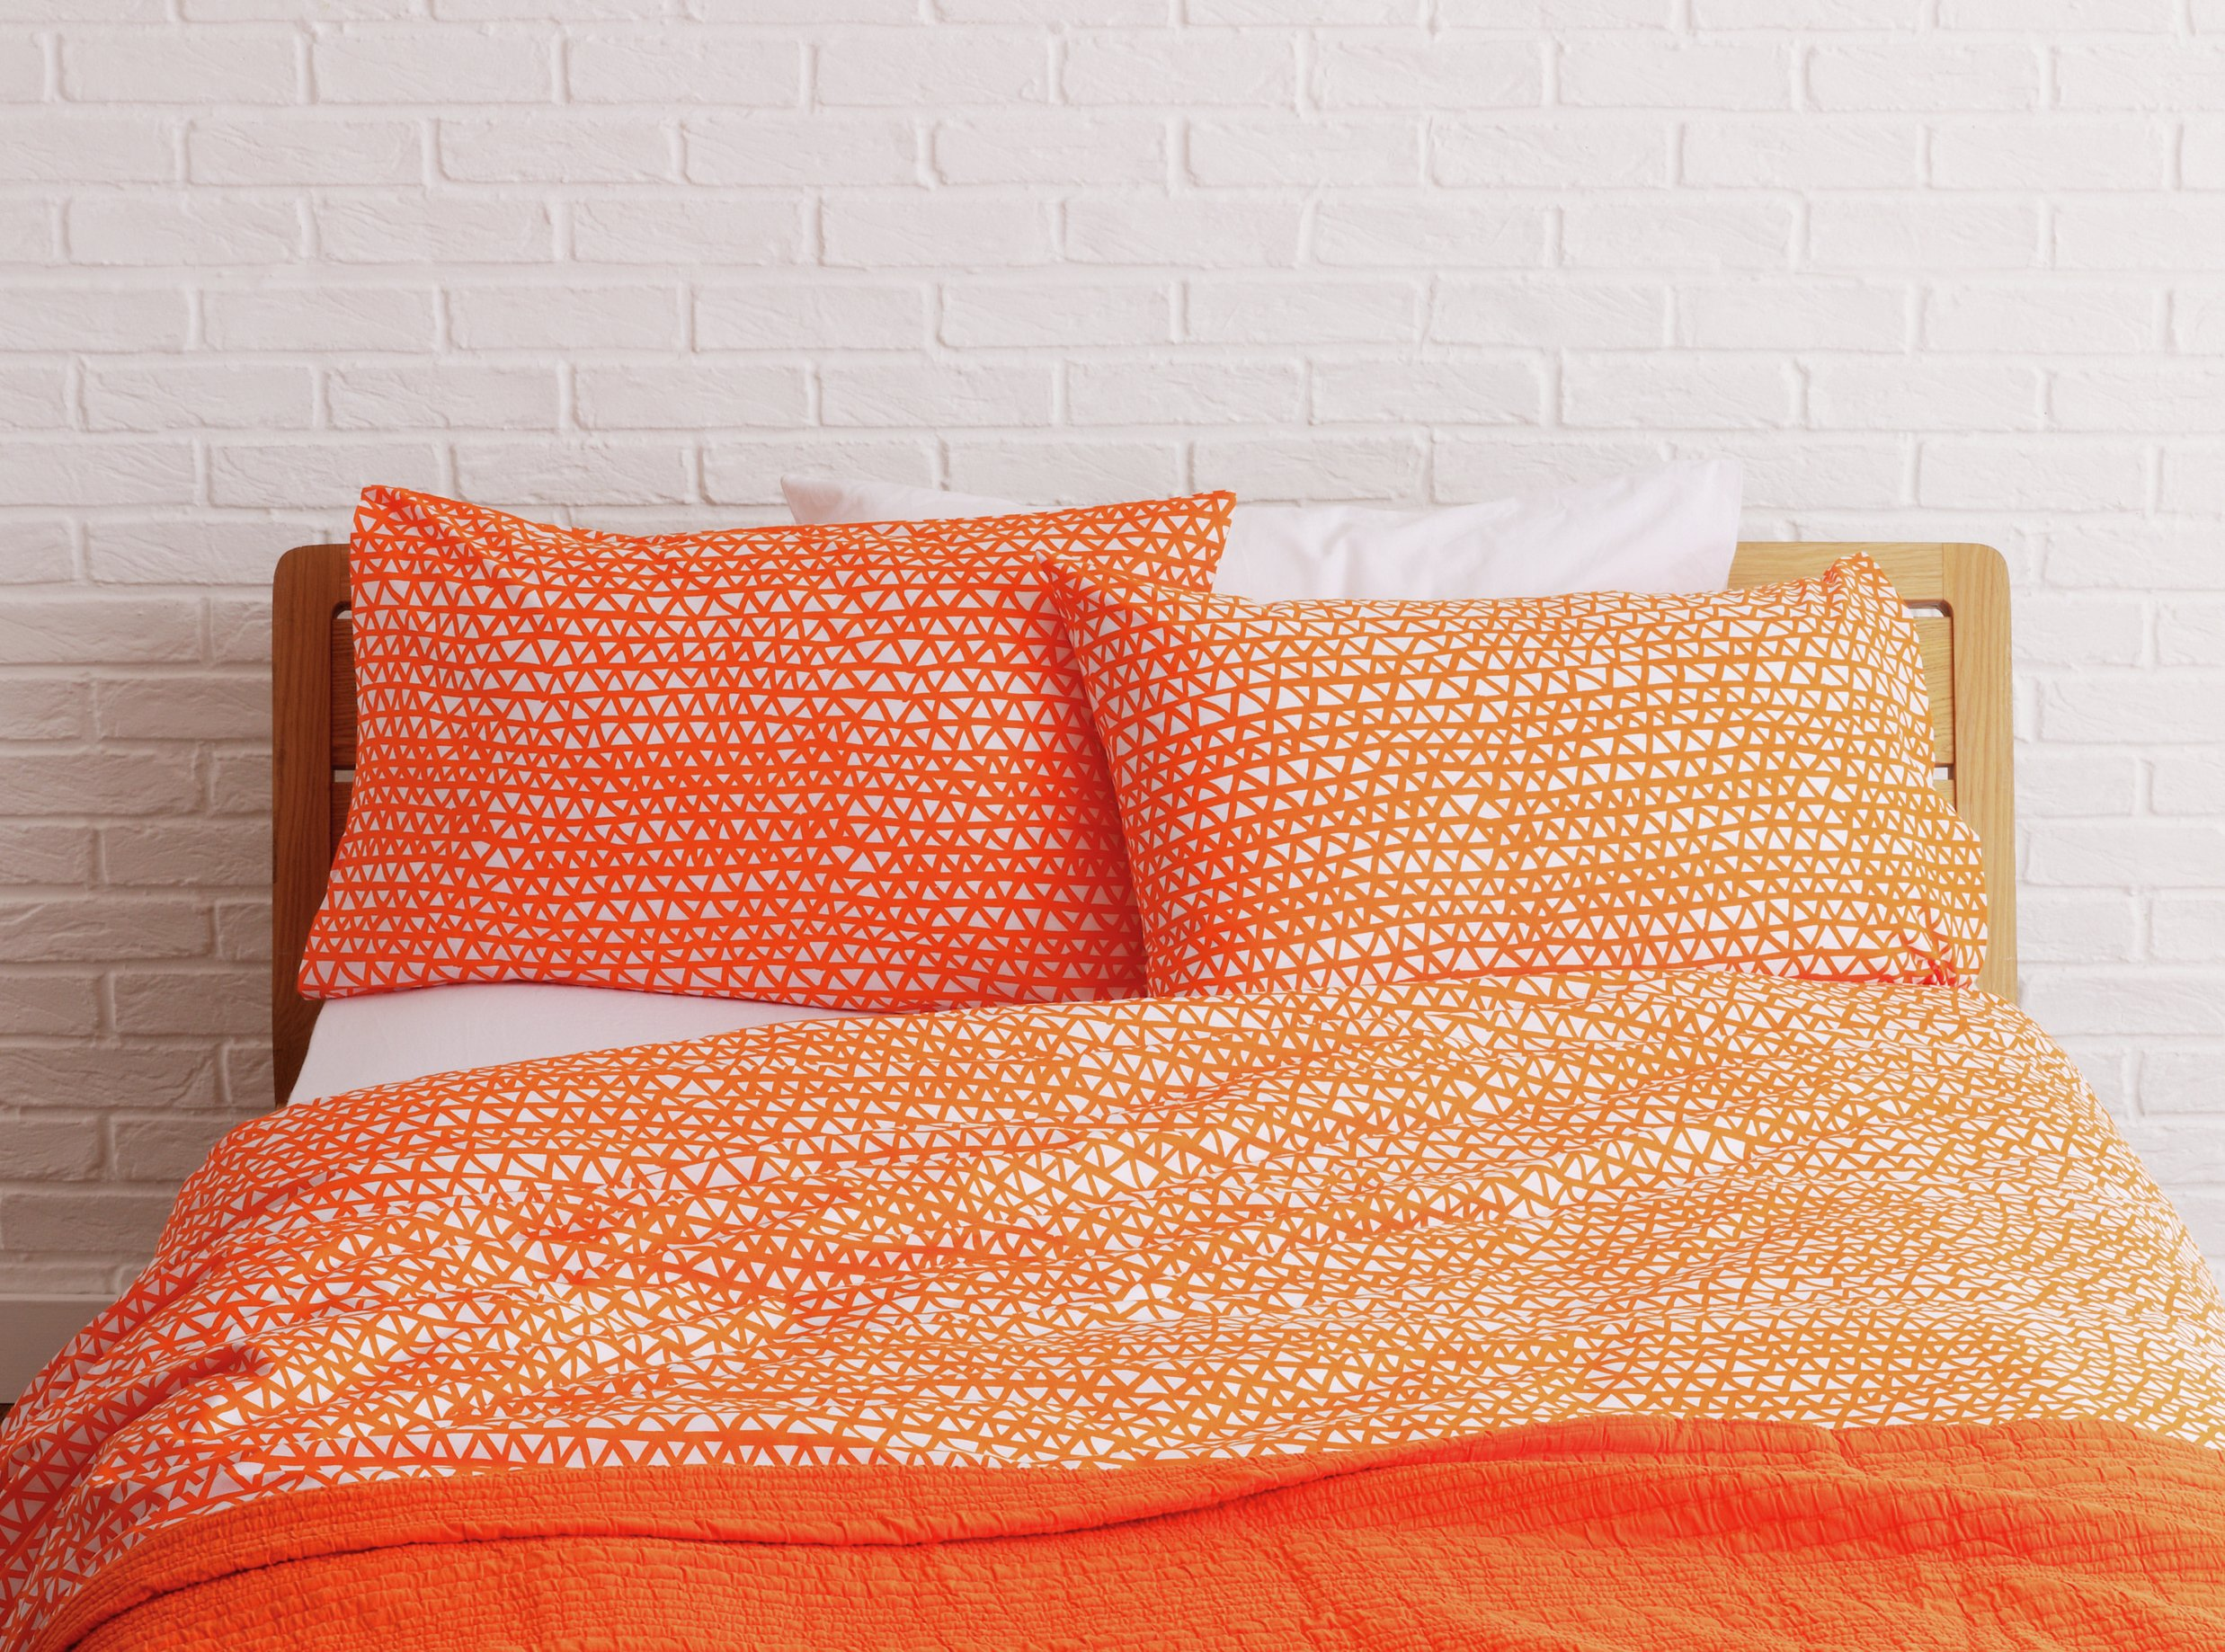 Habitat Noah Orange Duvet Cover Set - Kingsize